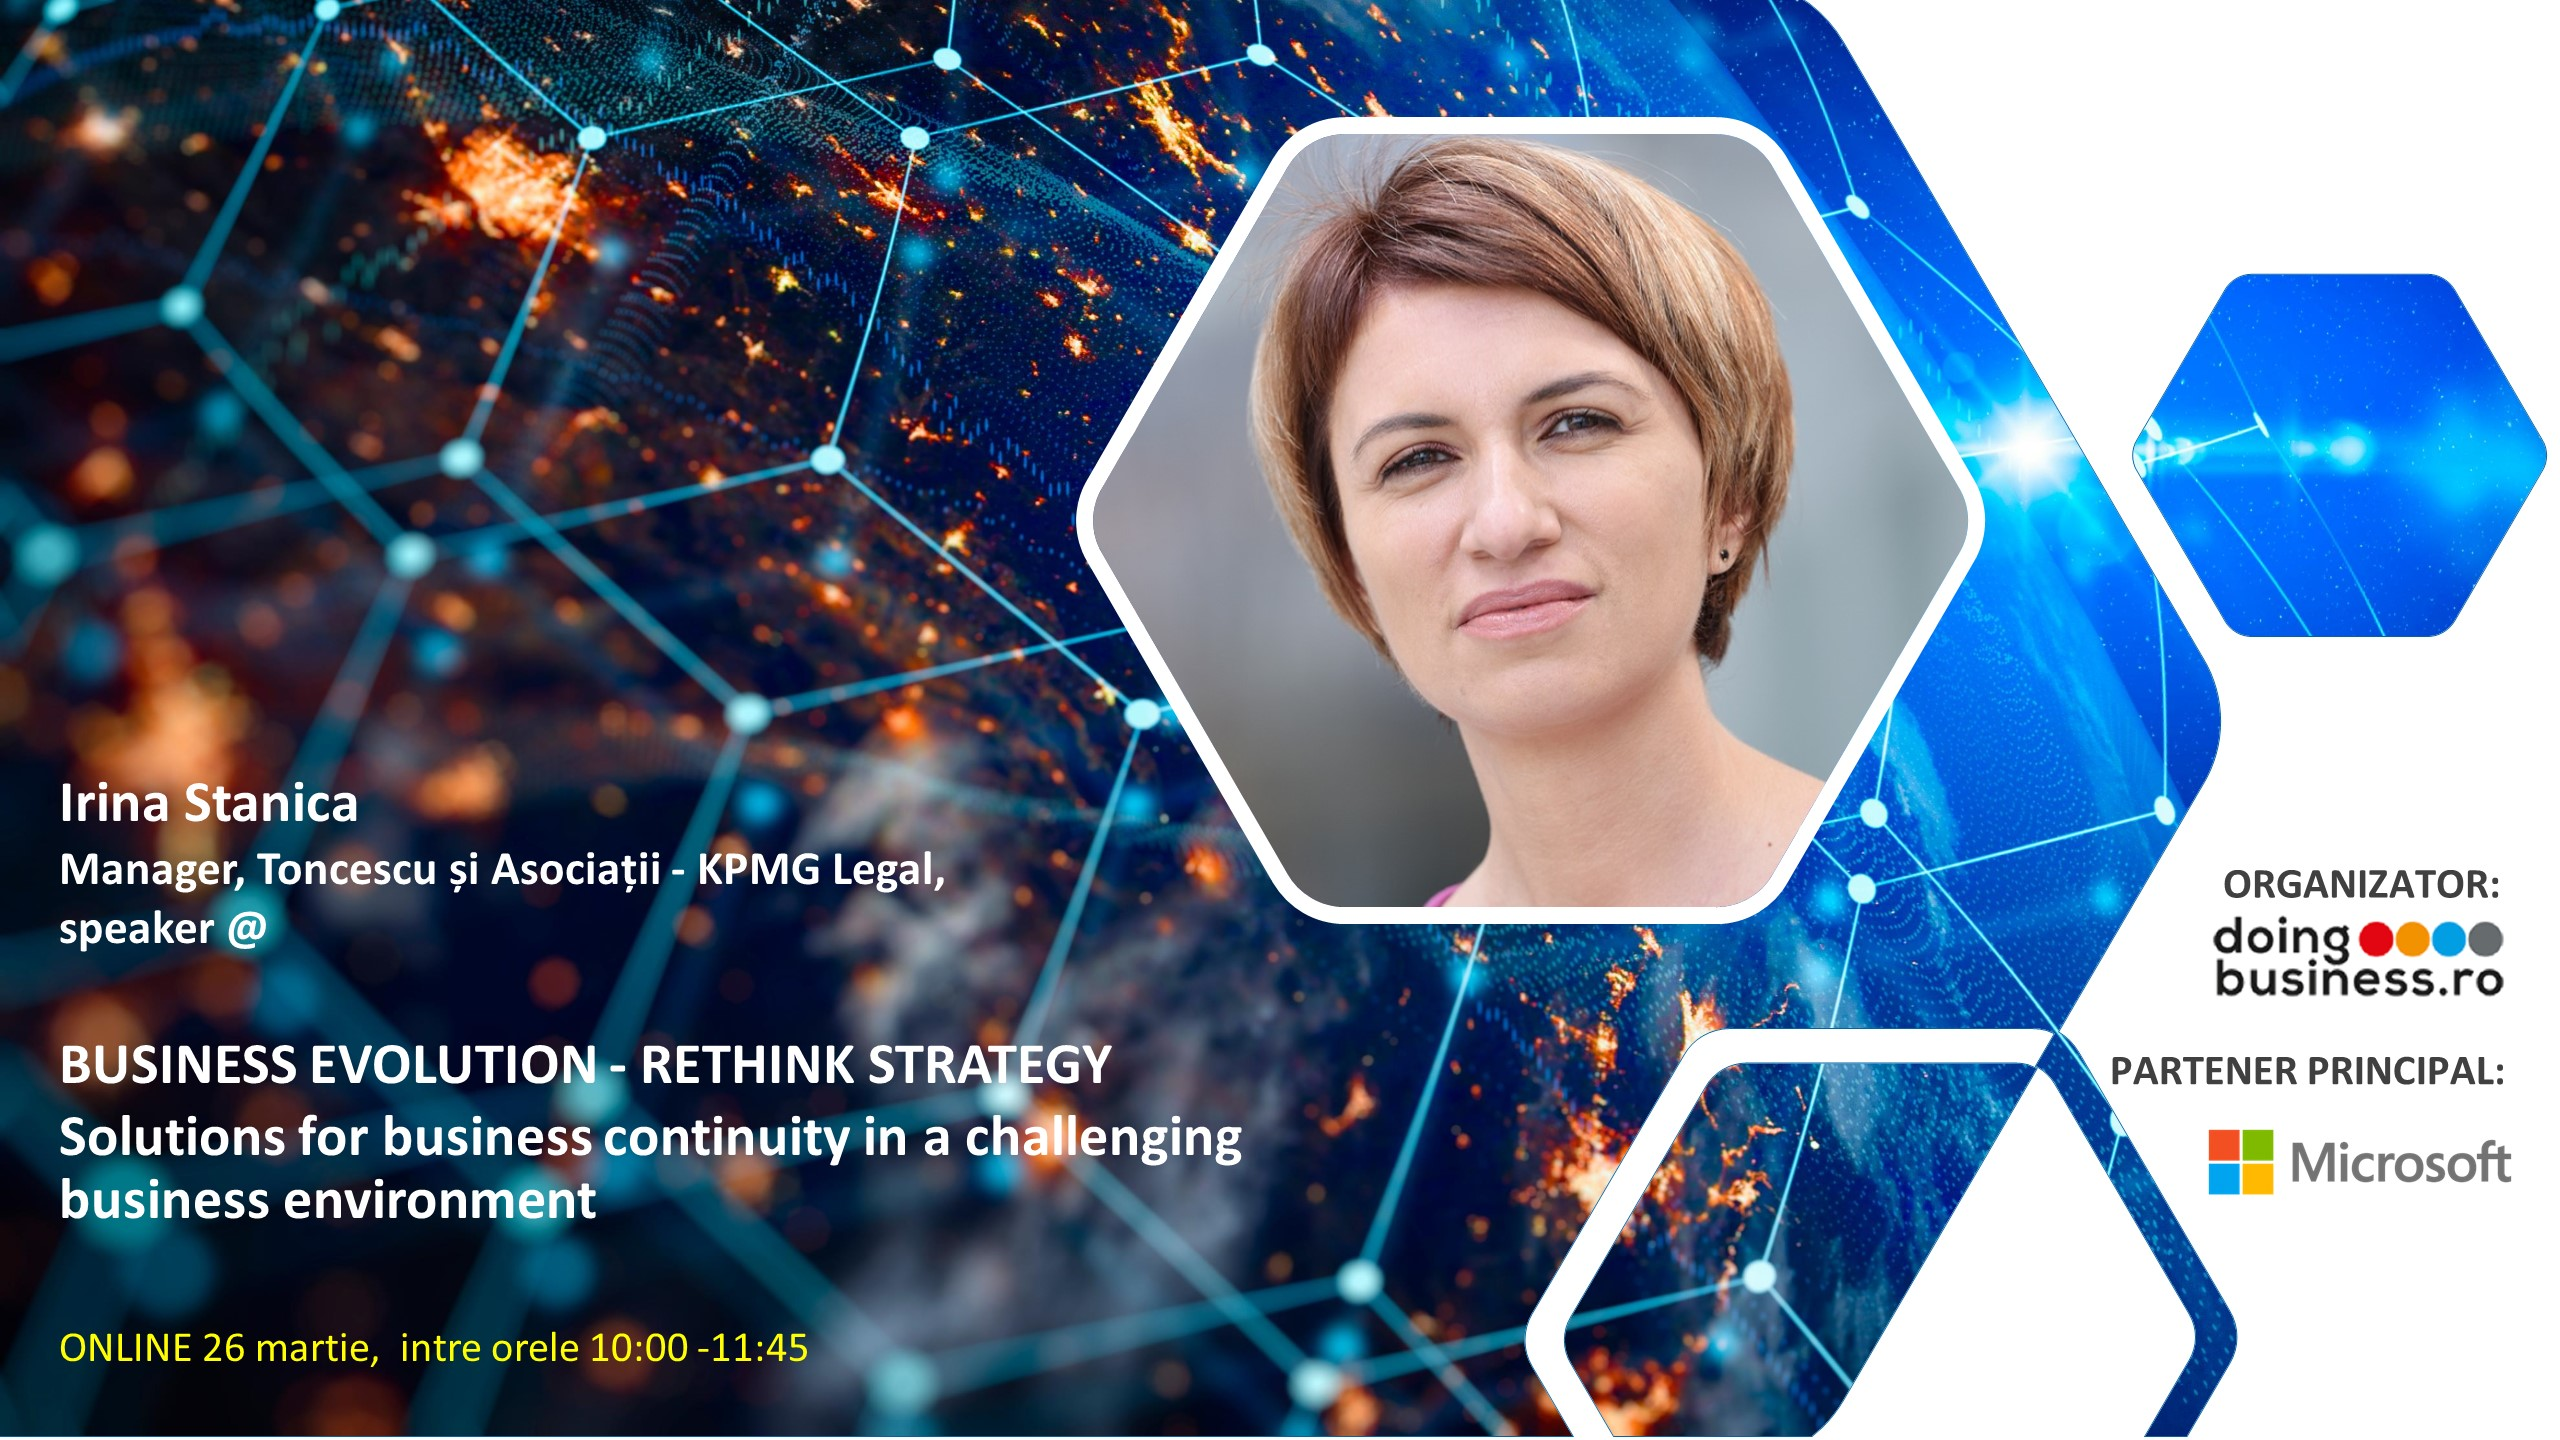 IRINA STANICA, at BUSINESS EVOLUTION, Rethink Strategy